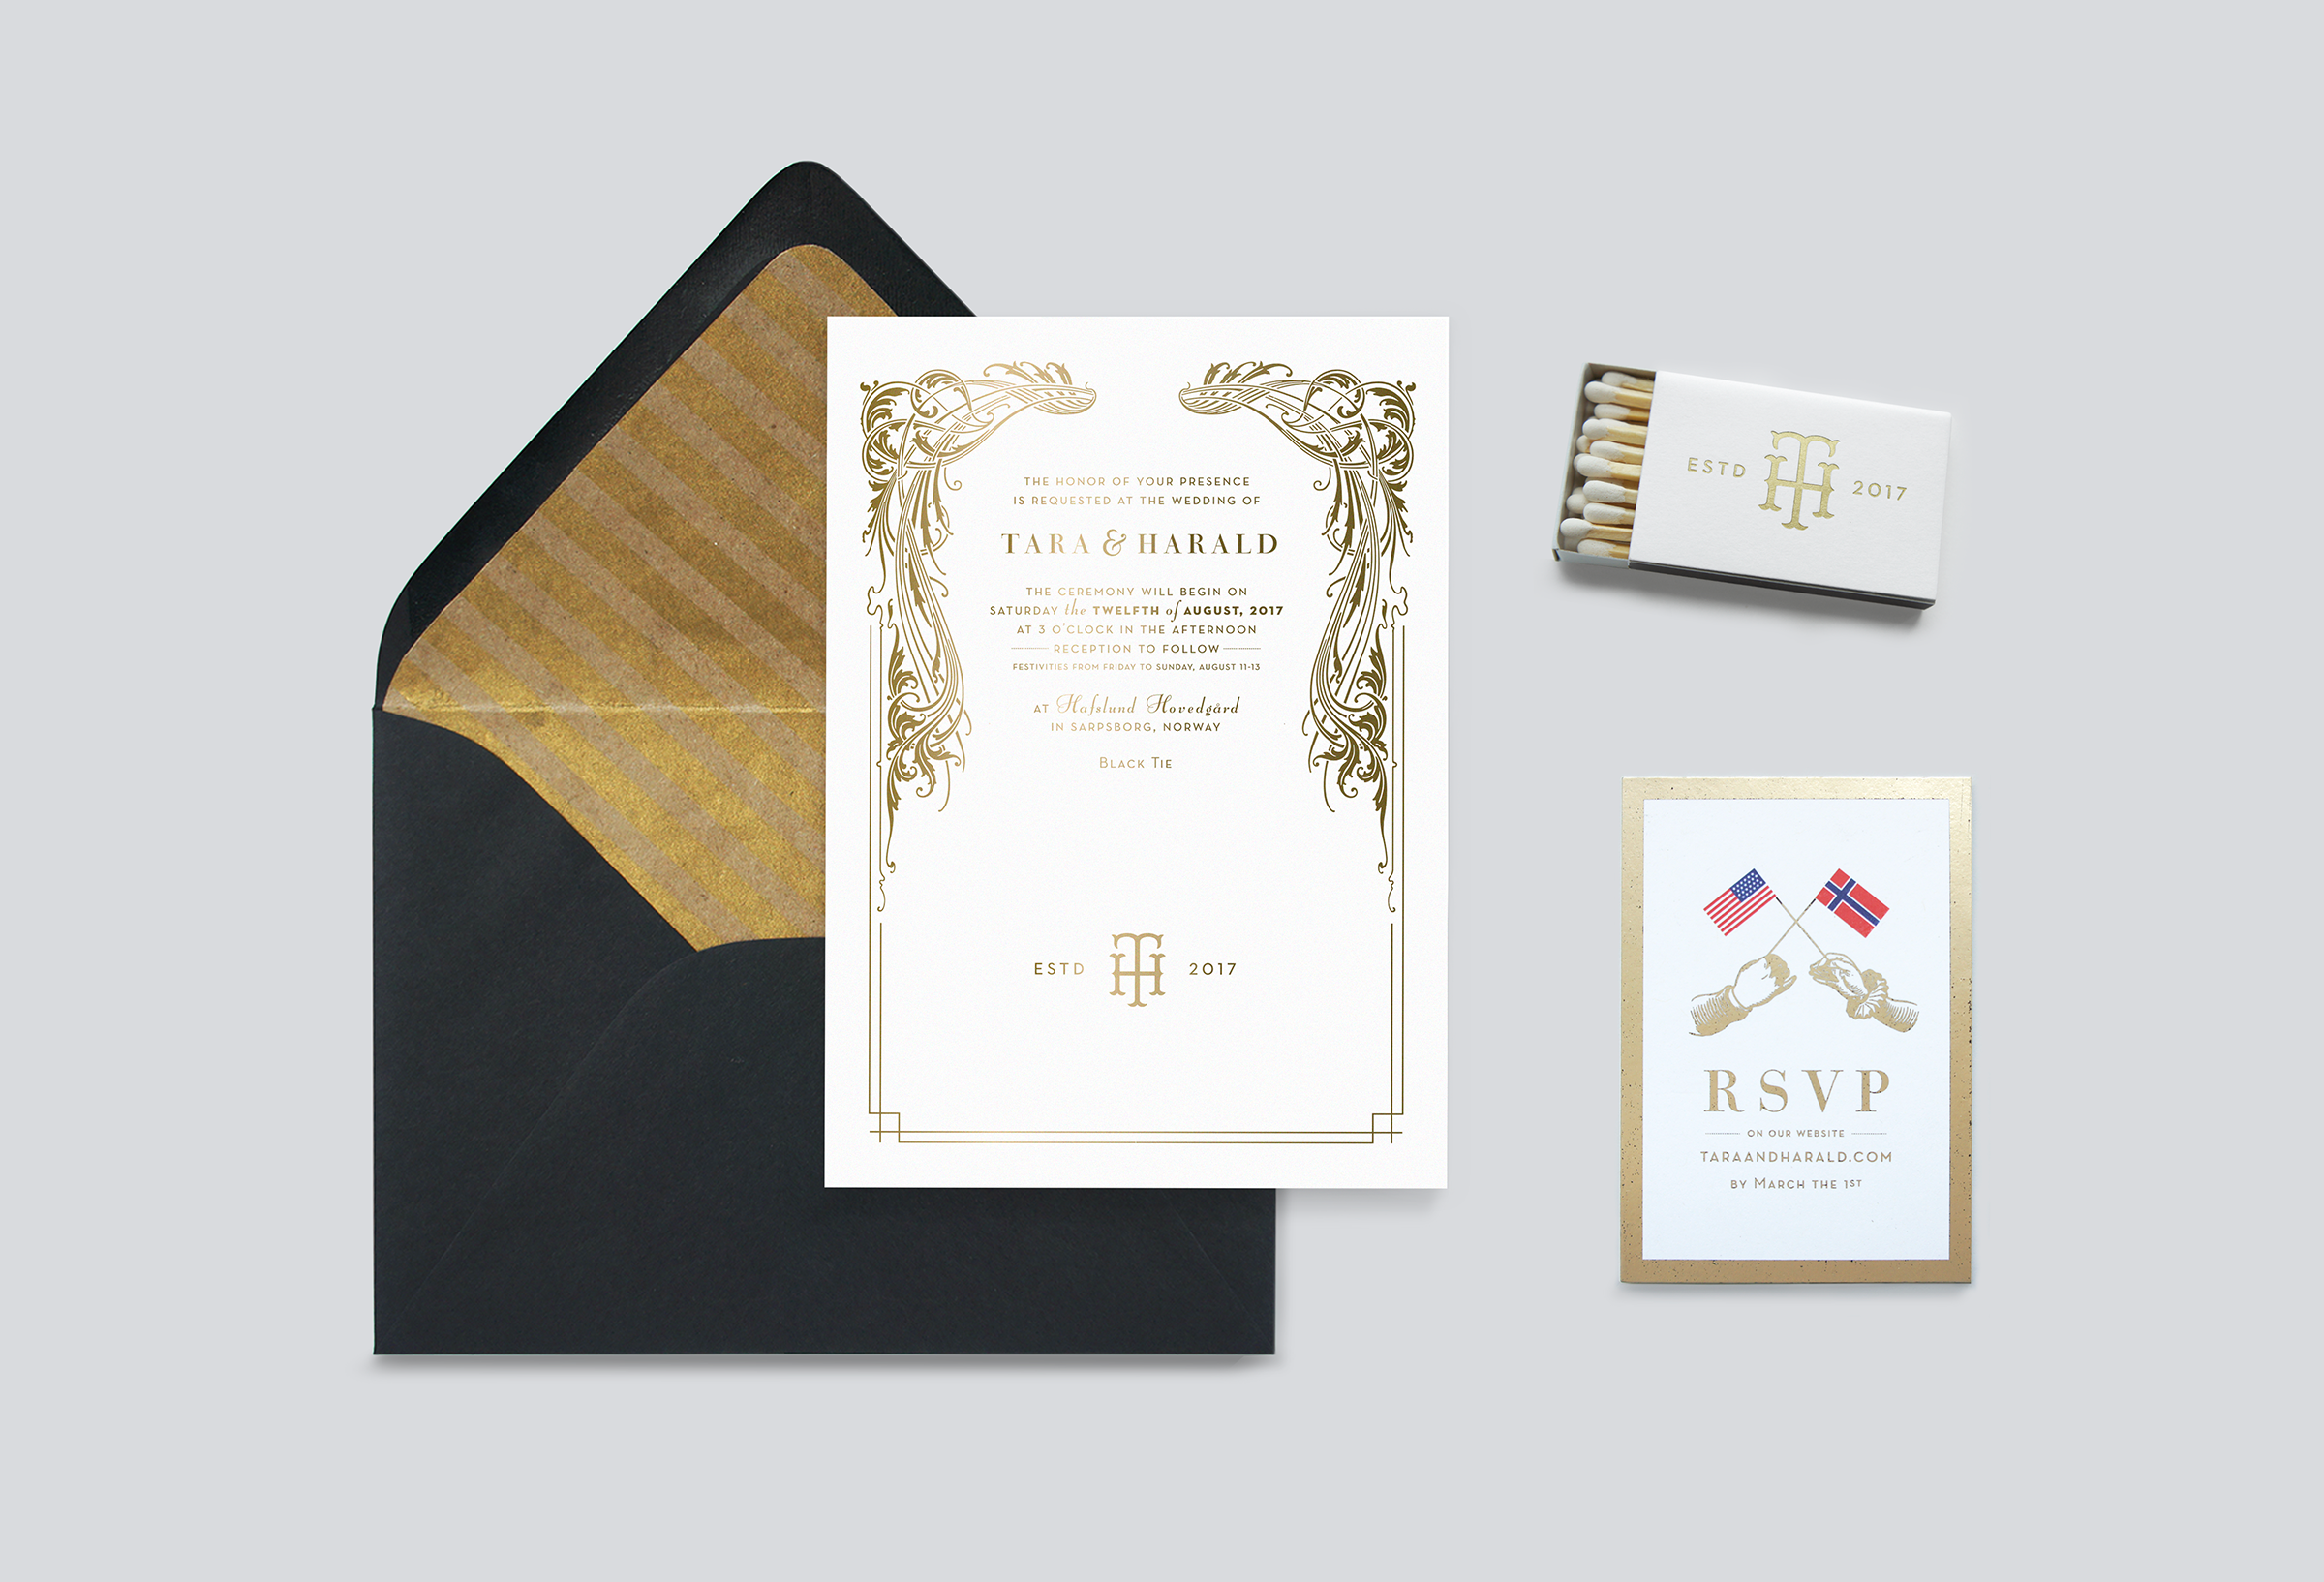 wedding invitation design, menu design, matchbook design